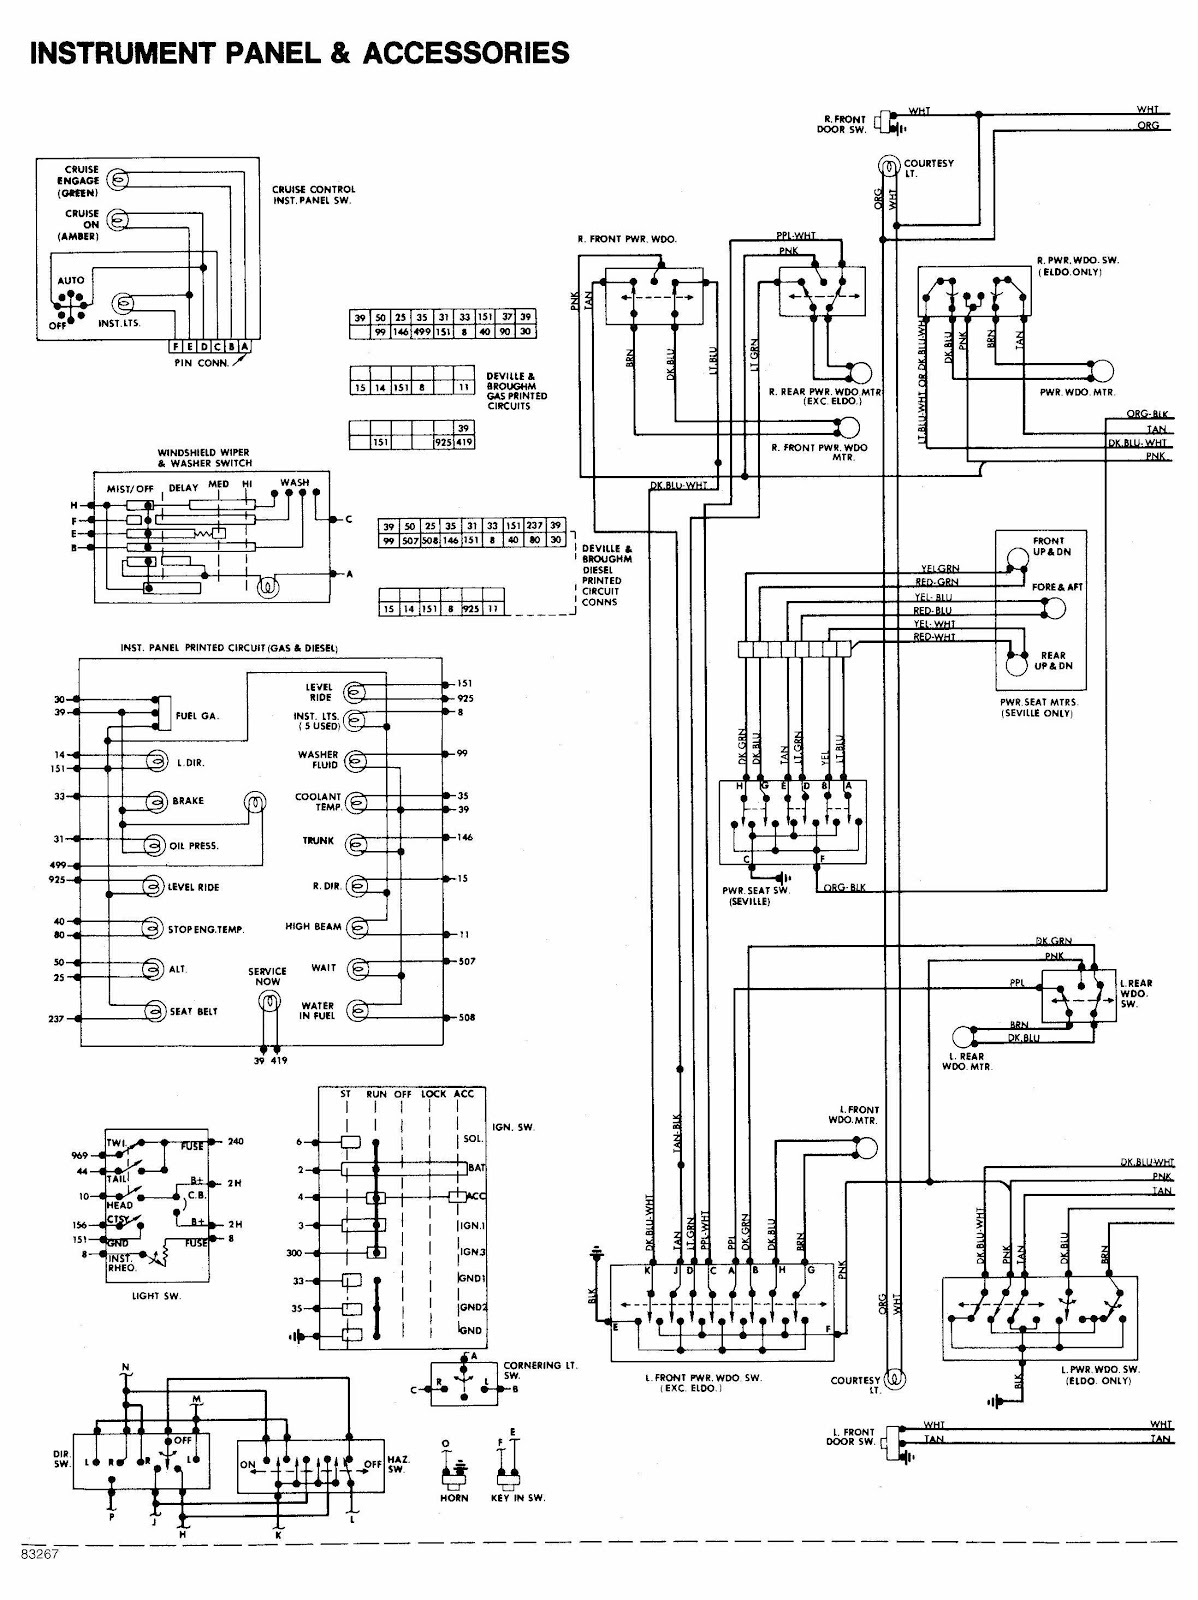 Cadillac De Ville 1984 Instrument Panel and Accessories Wiring Diagram | All about Wiring Diagrams